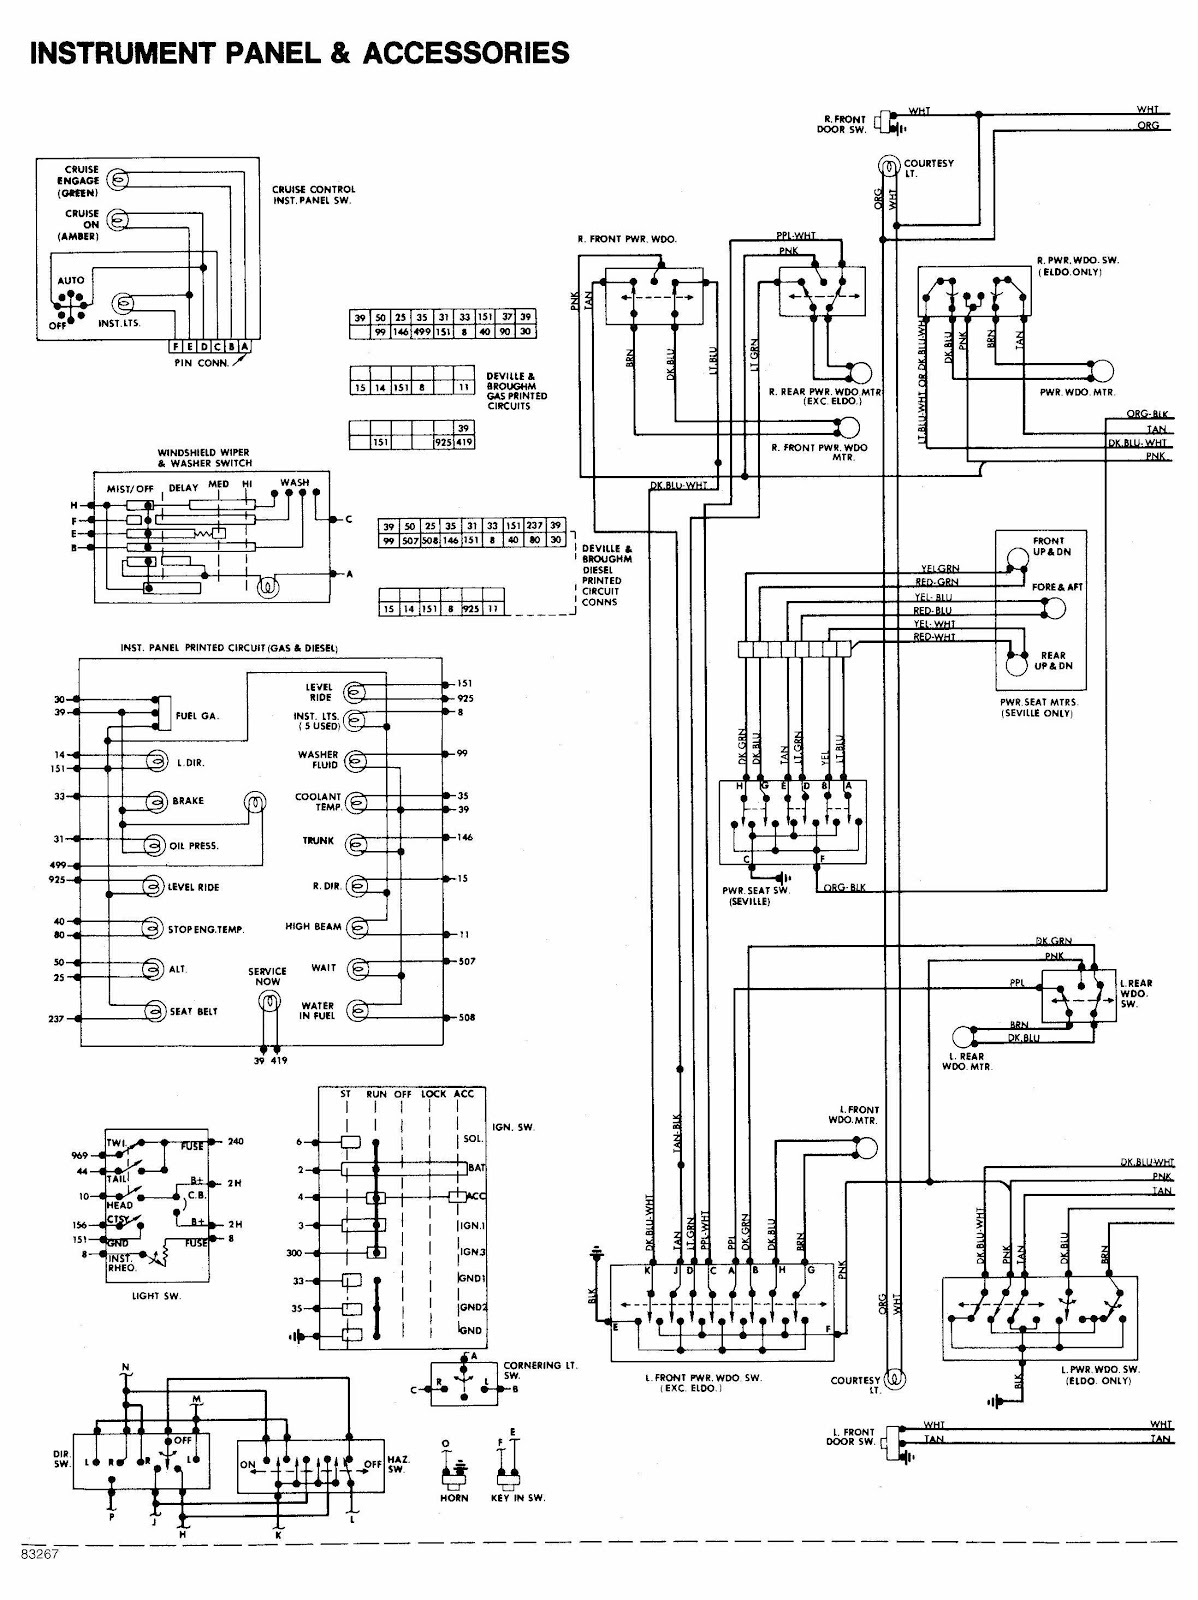 Cadillac De Ville 1984 Instrument Panel and Accessories Wiring Diagram | All about Wiring Diagrams